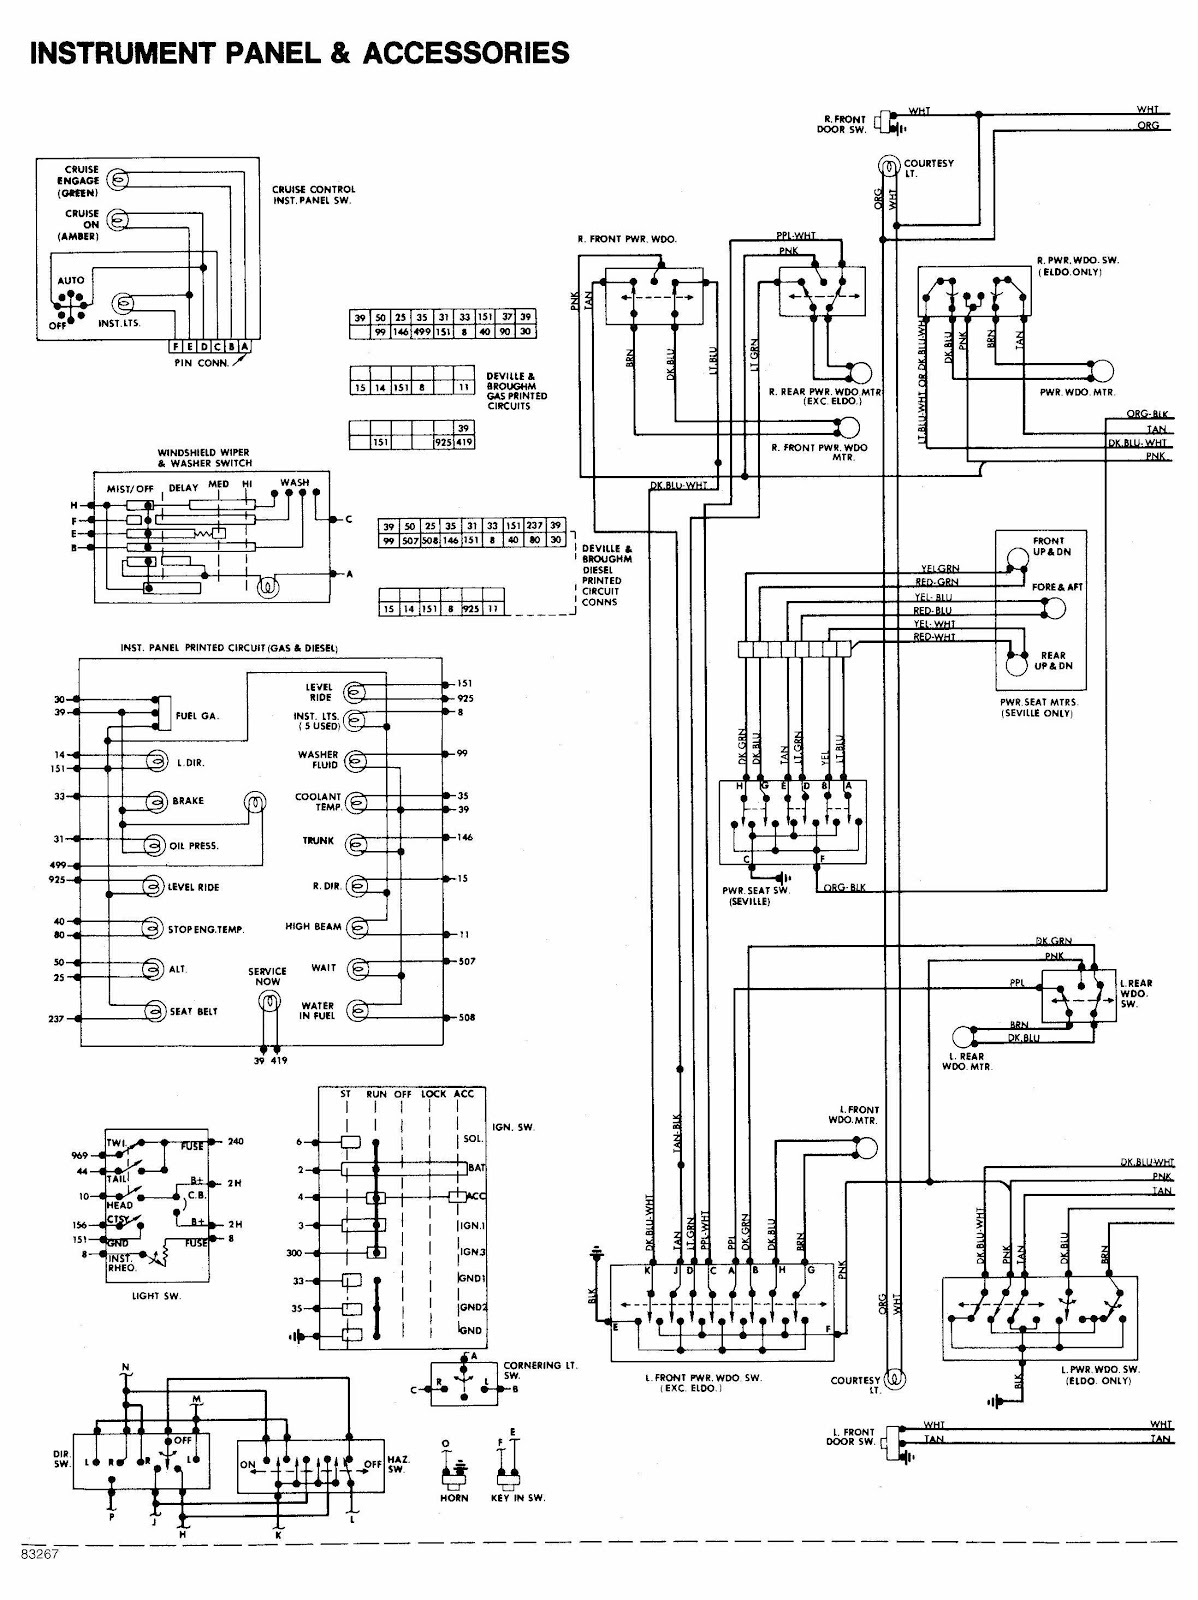 Cadillac De Ville 1984 Instrument Panel and Accessories Wiring Diagram | All about Wiring Diagrams